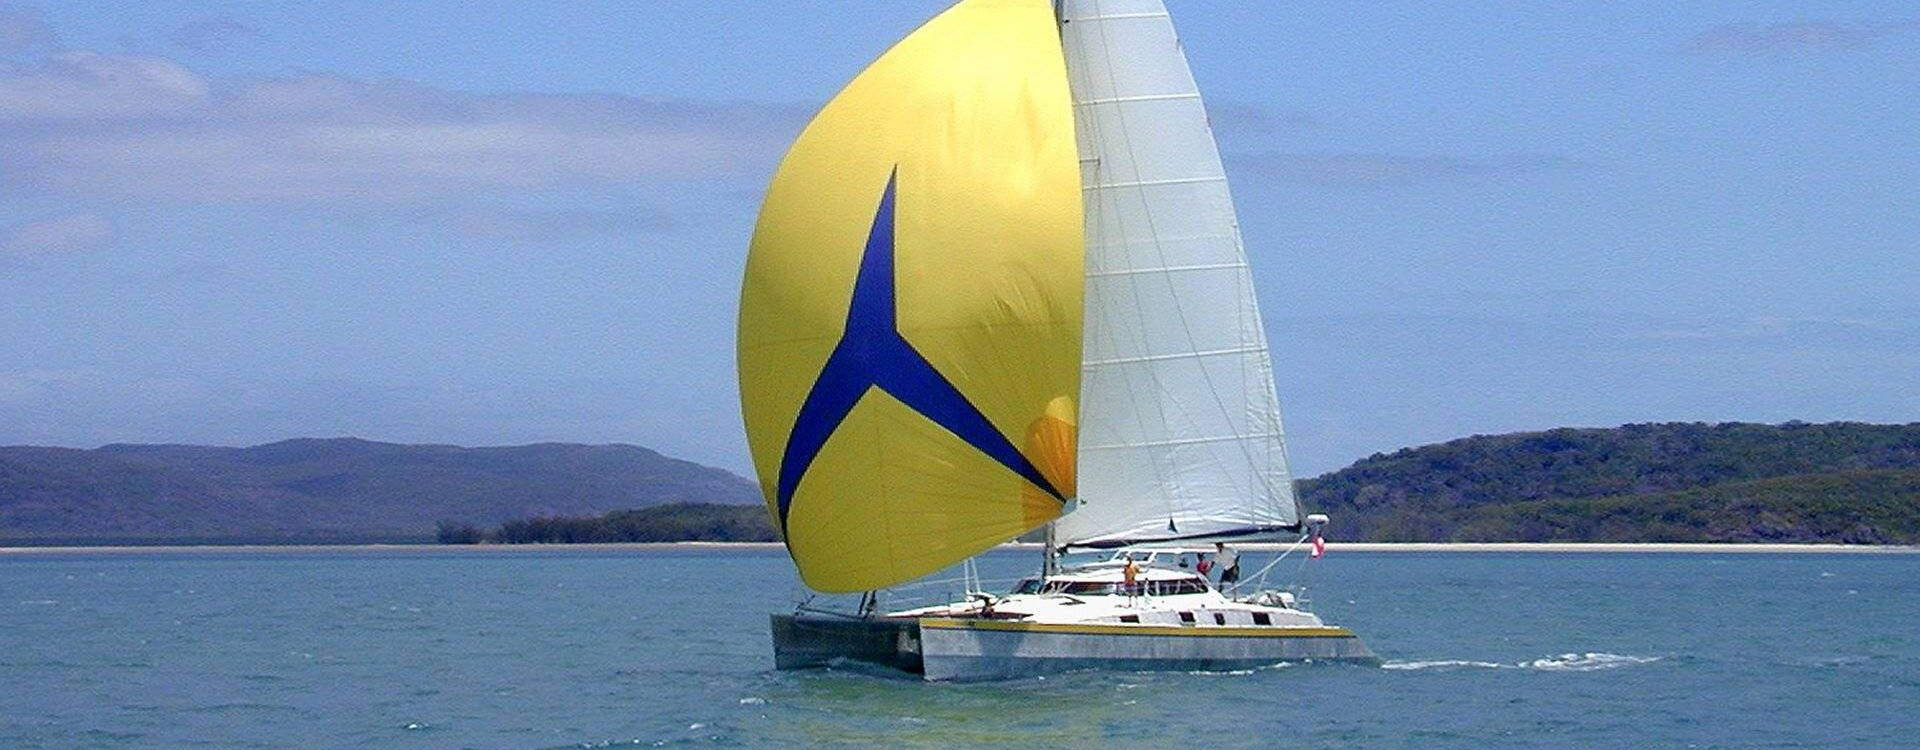 sailing holiday phuket thailand